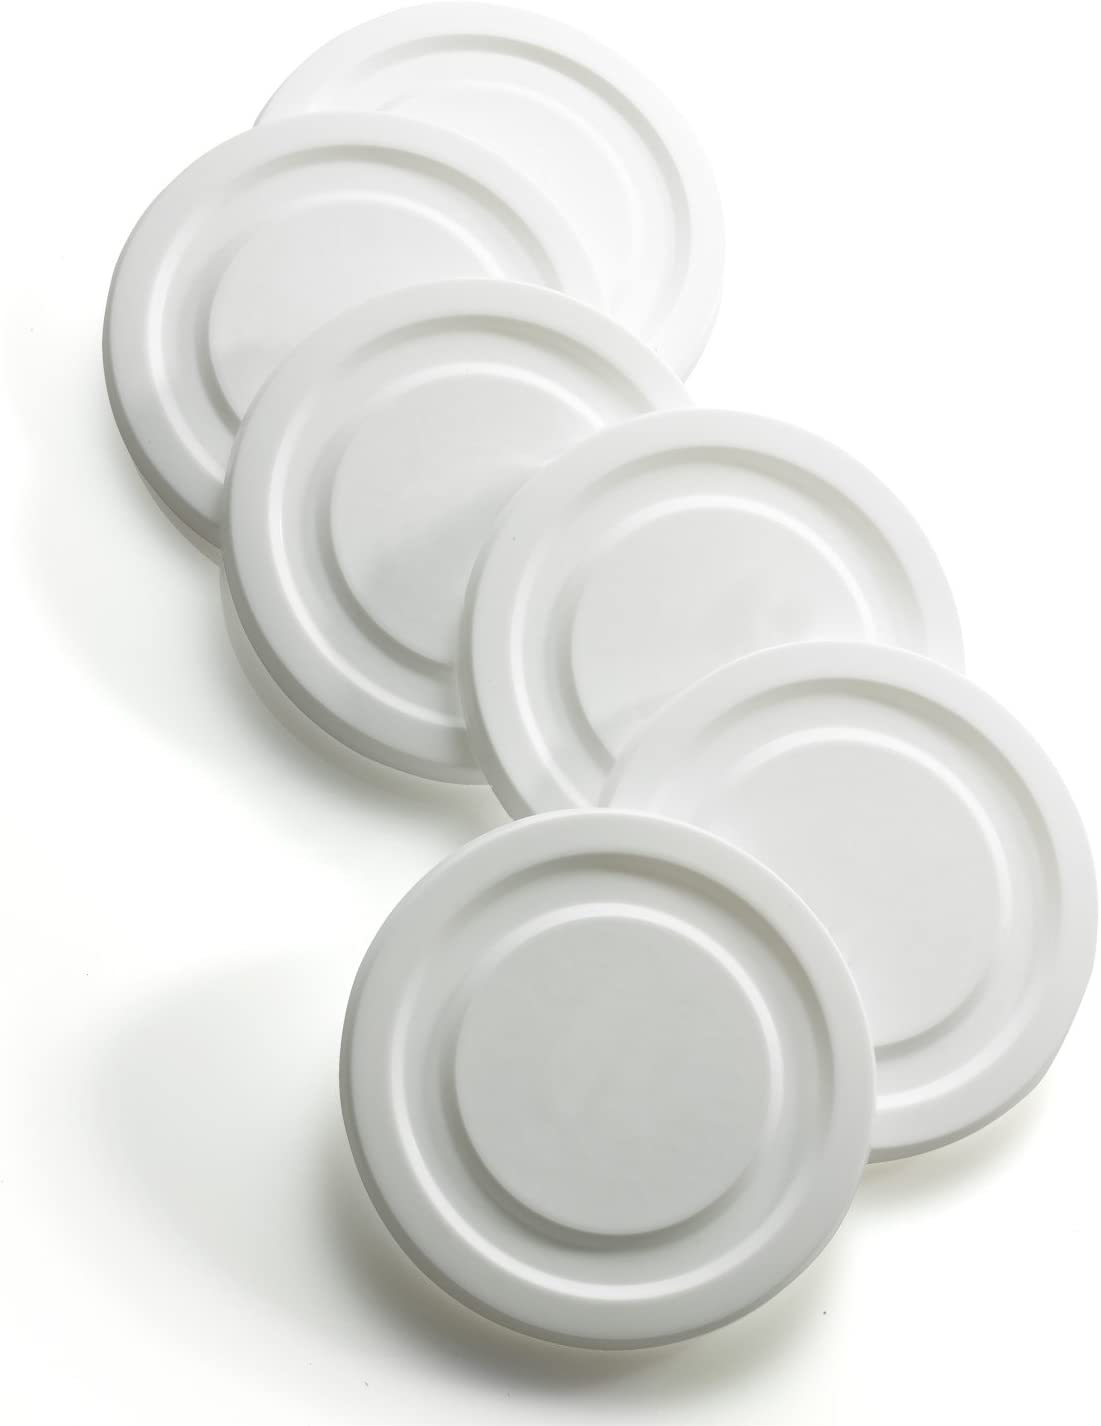 ARC International Luminarc White Working Glass Lids for Double Old Fashioned Cooler Glass, Set of 6